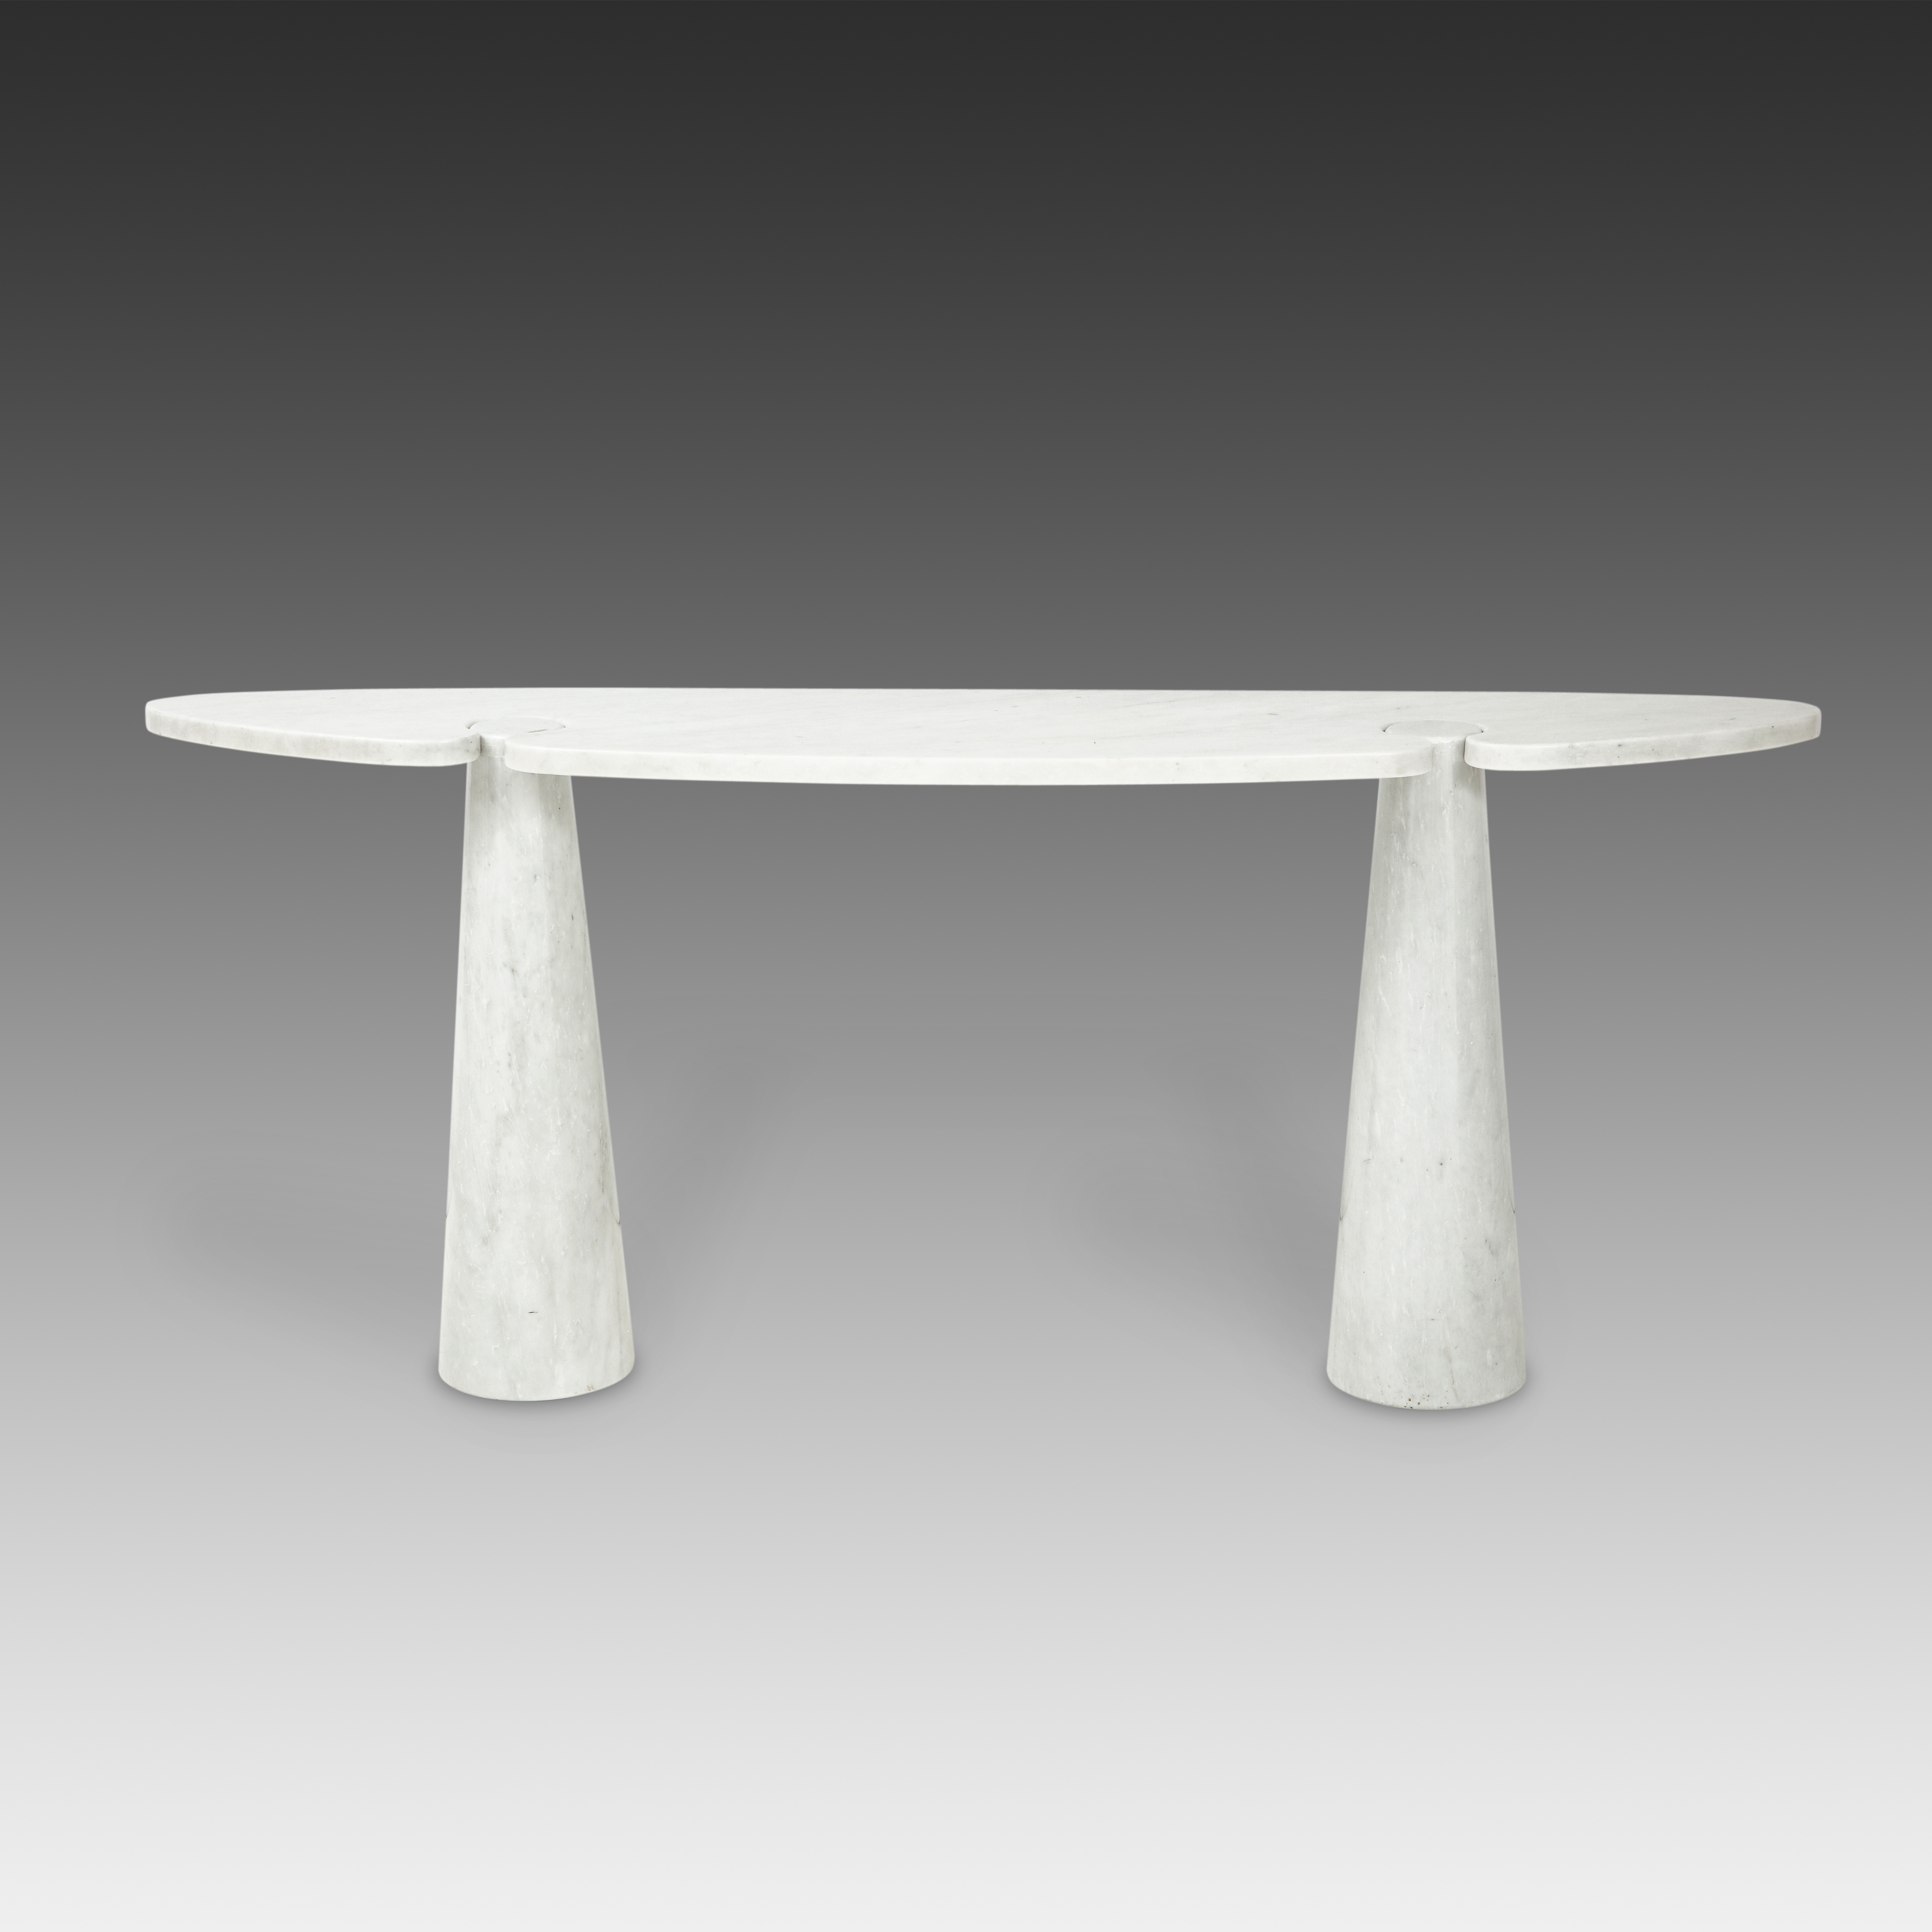 Carrara Marble Console from 'Eros' Series by Angelo Mangiarotti for Skipper | soyun k.